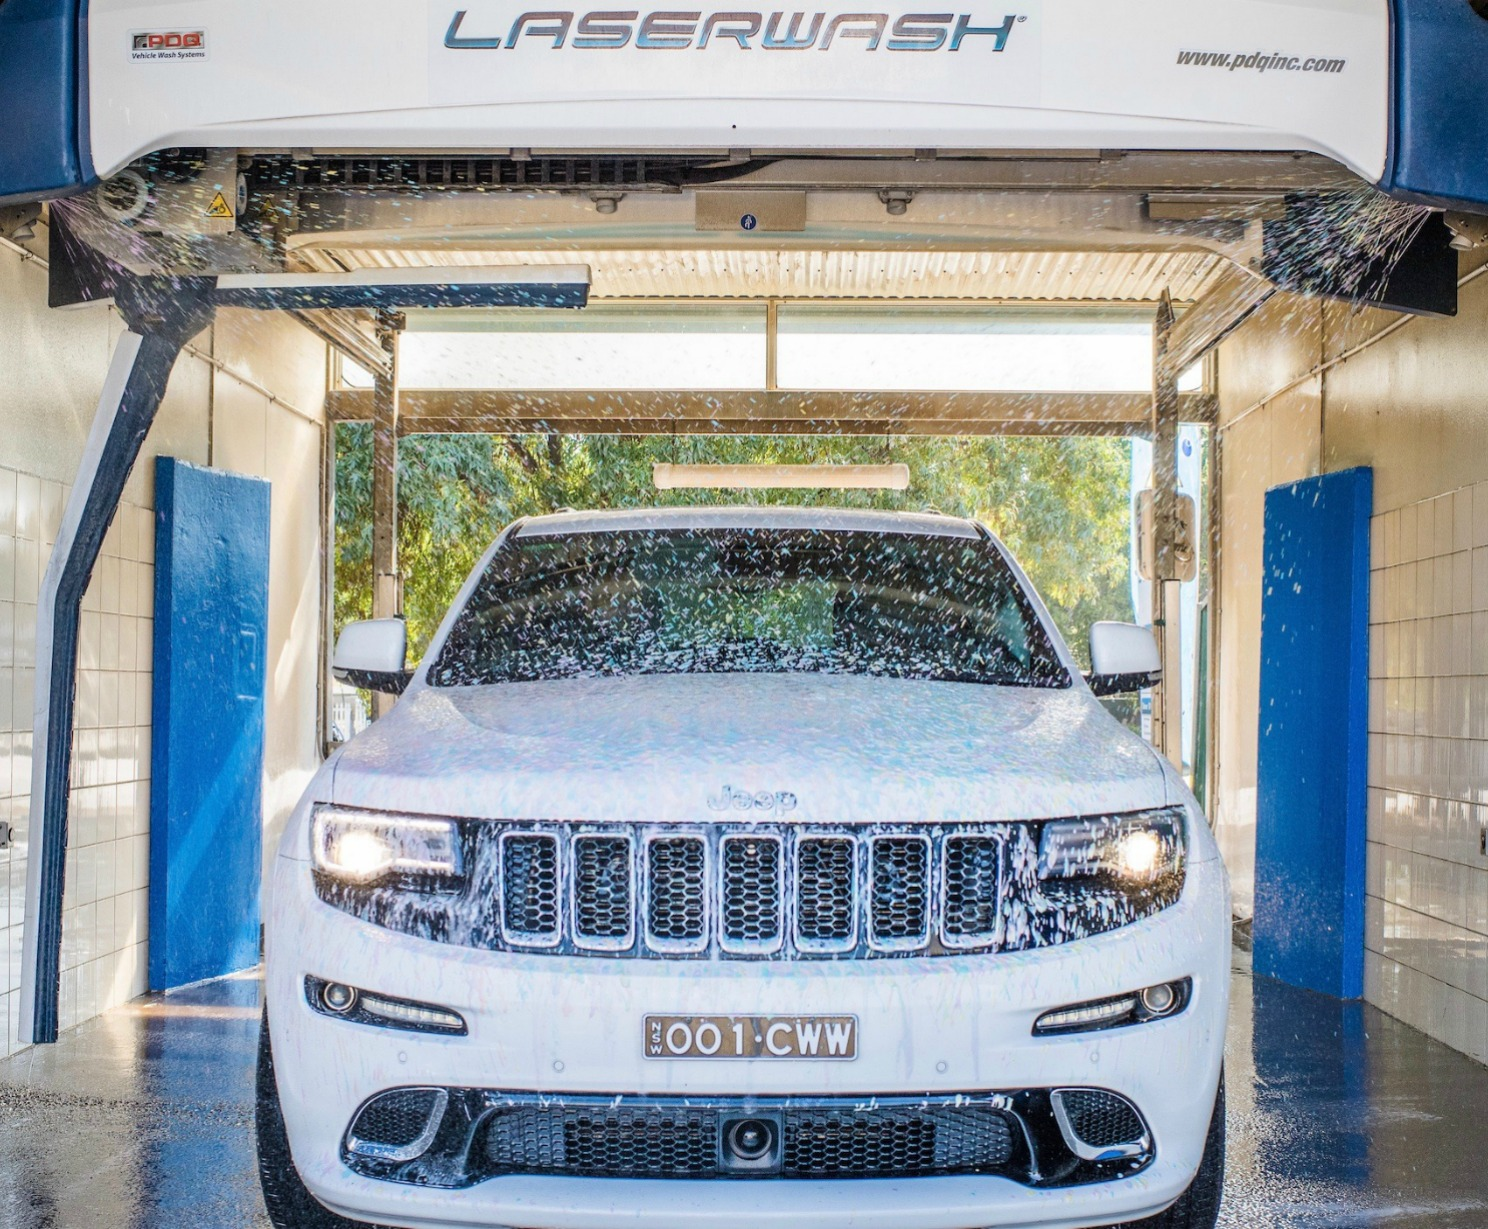 PDQ-Laserwash-360-Plus-Carwash-World-Australia